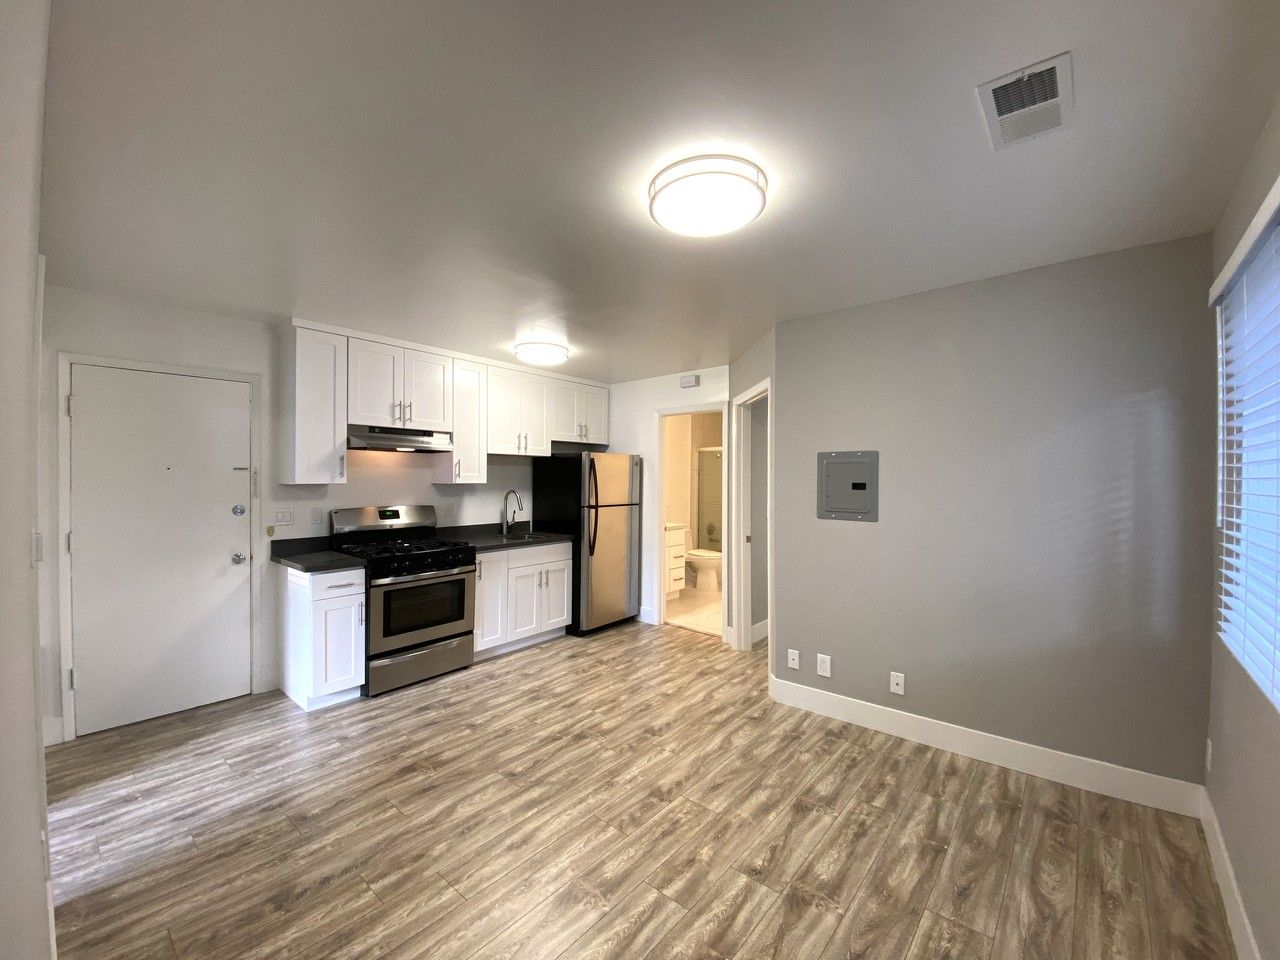 121 Broderick St 12 San Francisco Ca 94117 2 Bedroom Condo For Rent For 2 250 Month Zumper